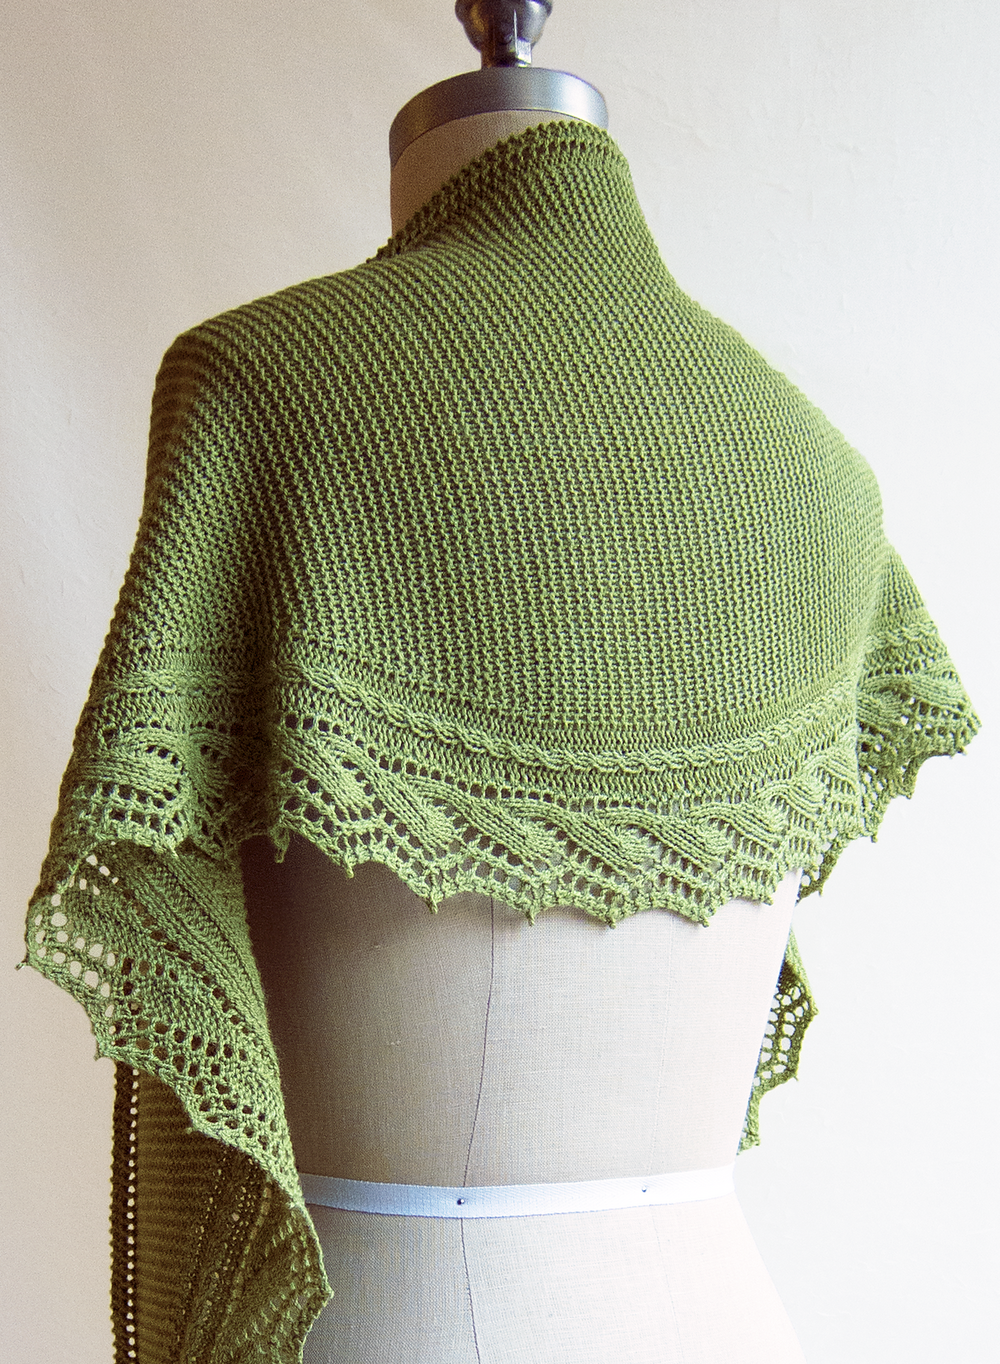 Millrace_shawl_11a.png